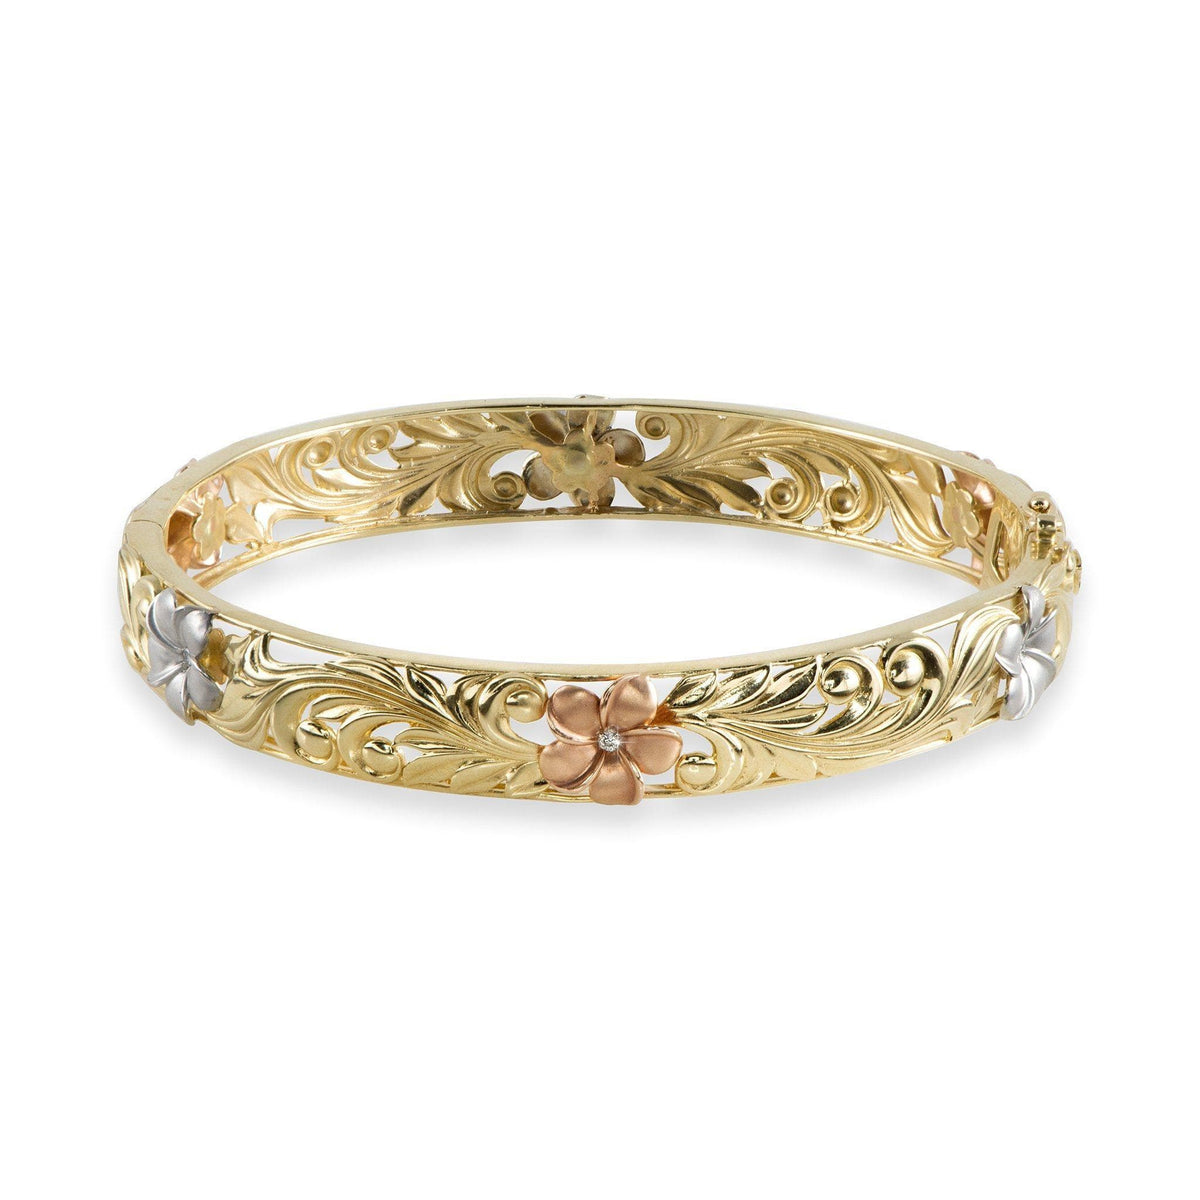 Hawaiian Heirloom Bracelet in Tri Color Gold with Diamonds